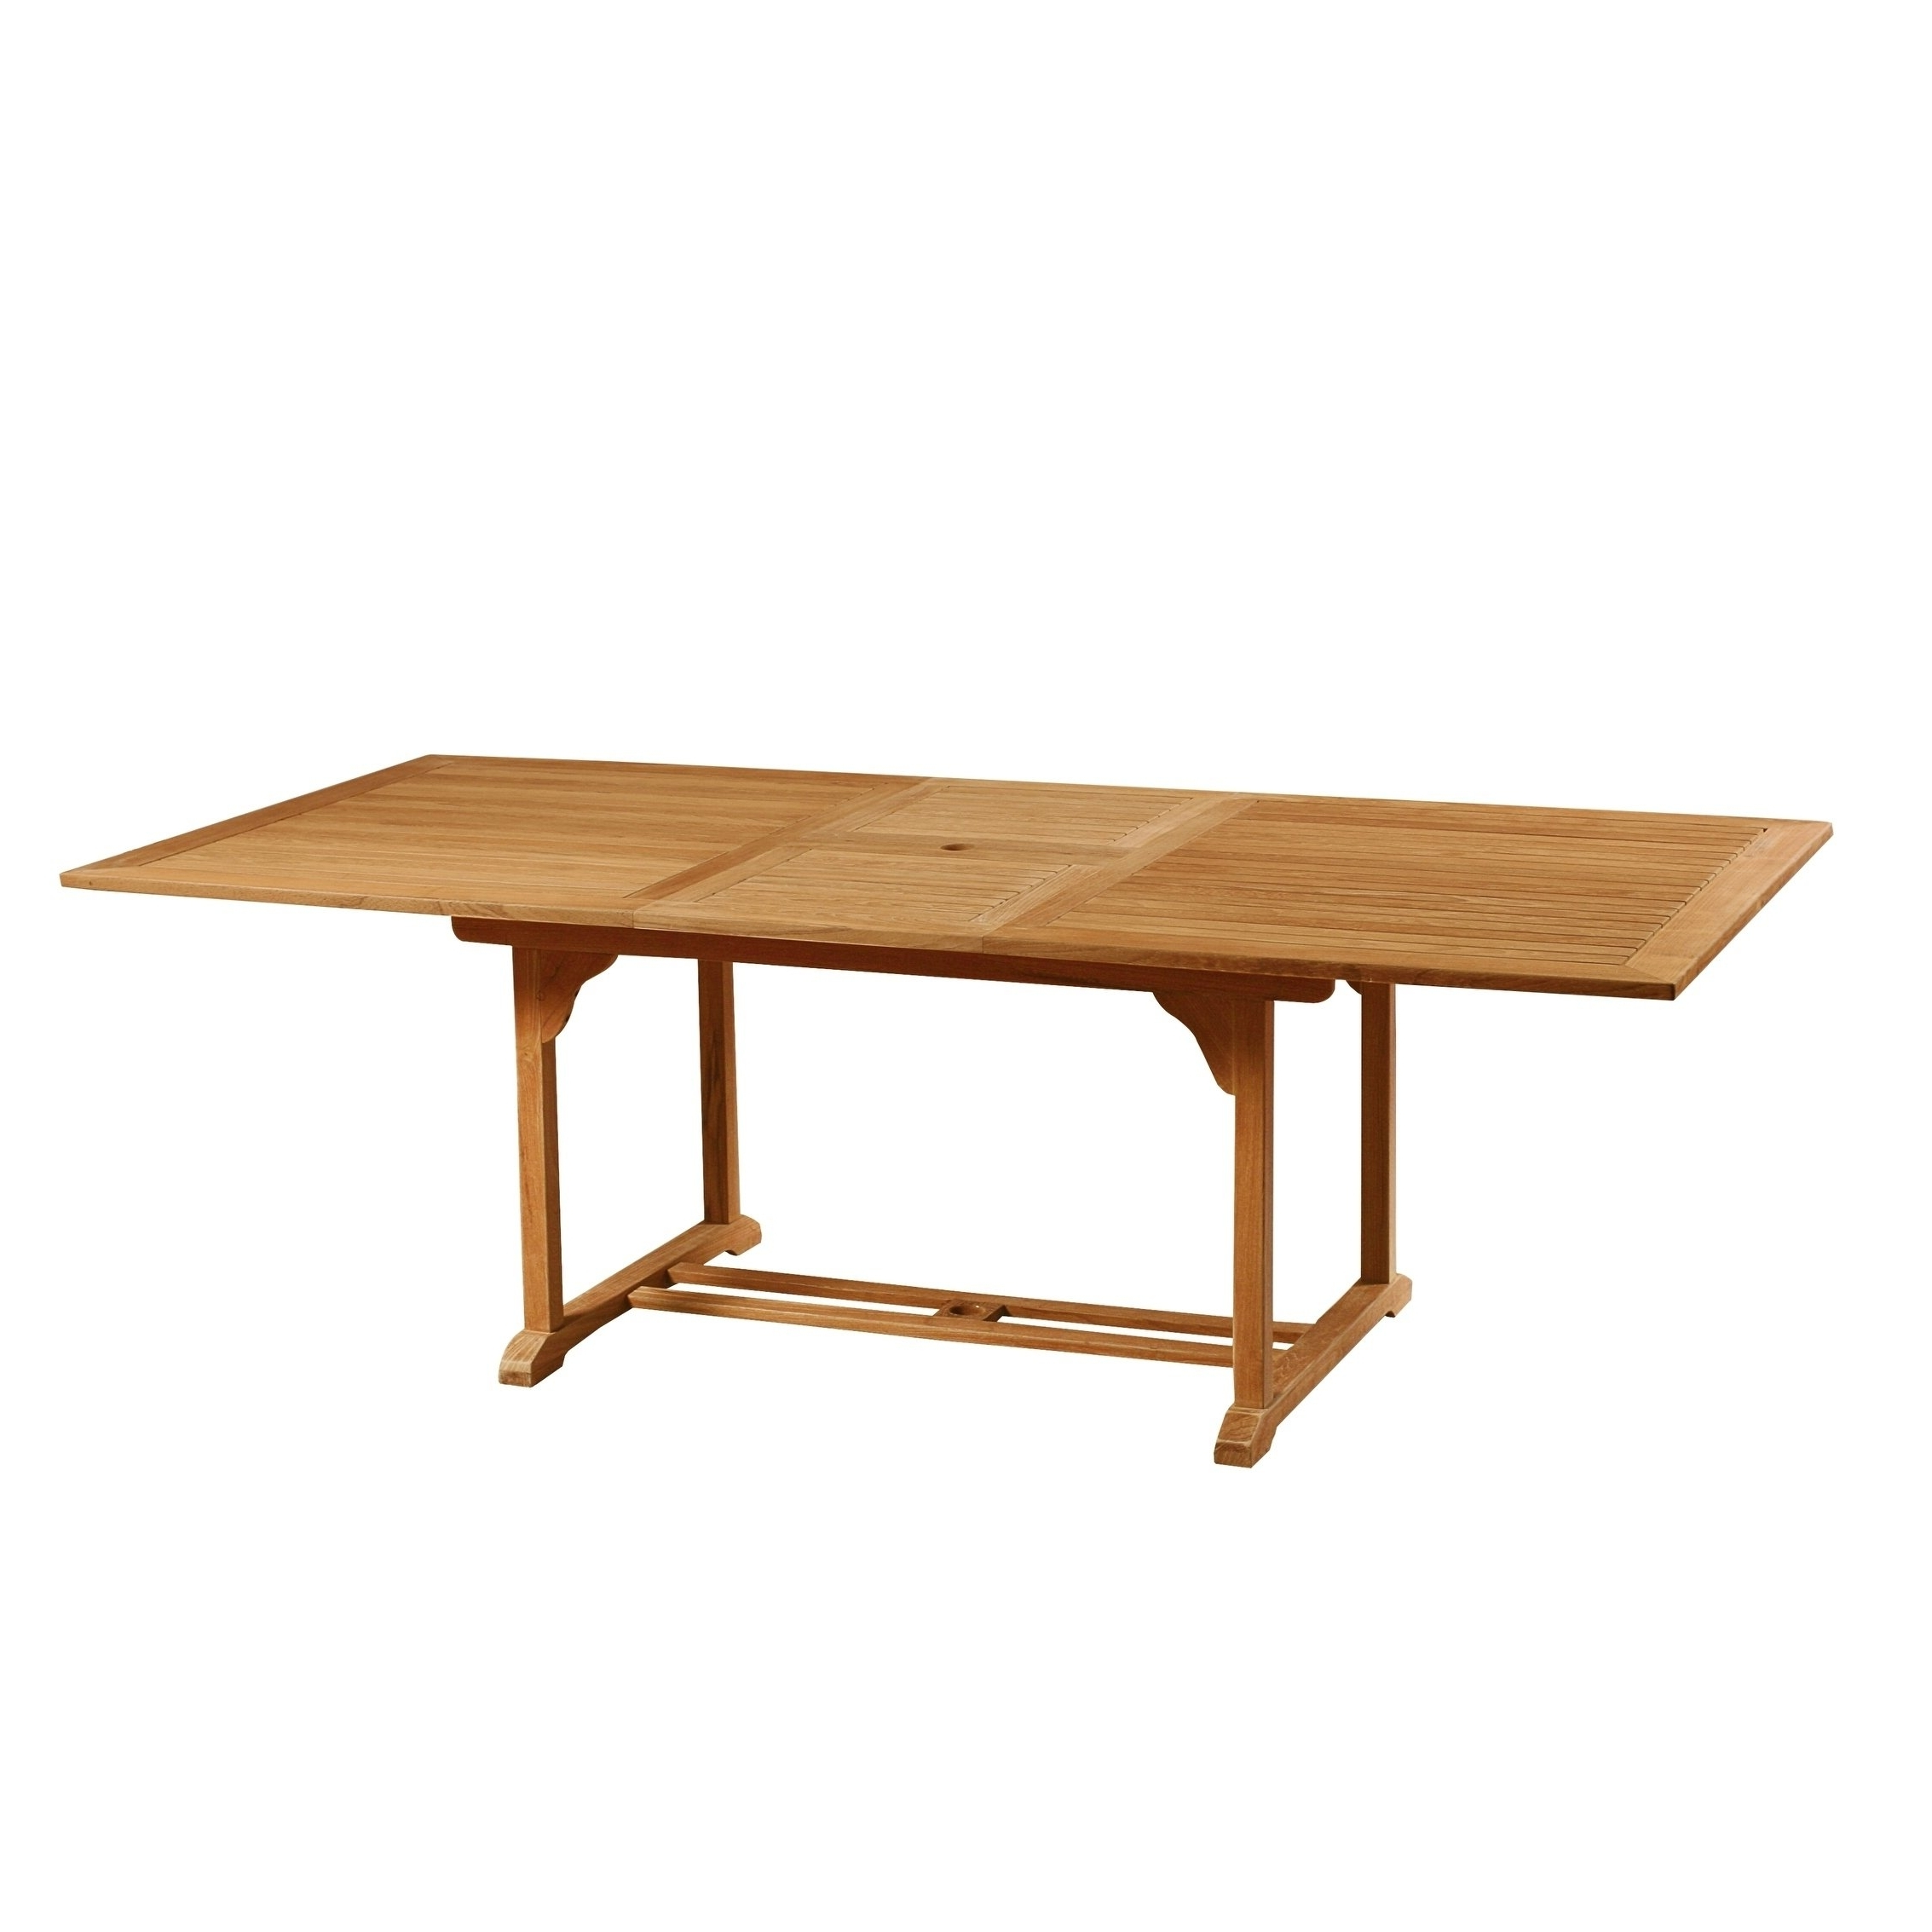 Extending Outdoor Dining Tables within Trendy Shop Dalton Outdoor Teak Extending Dining Table - Free Shipping